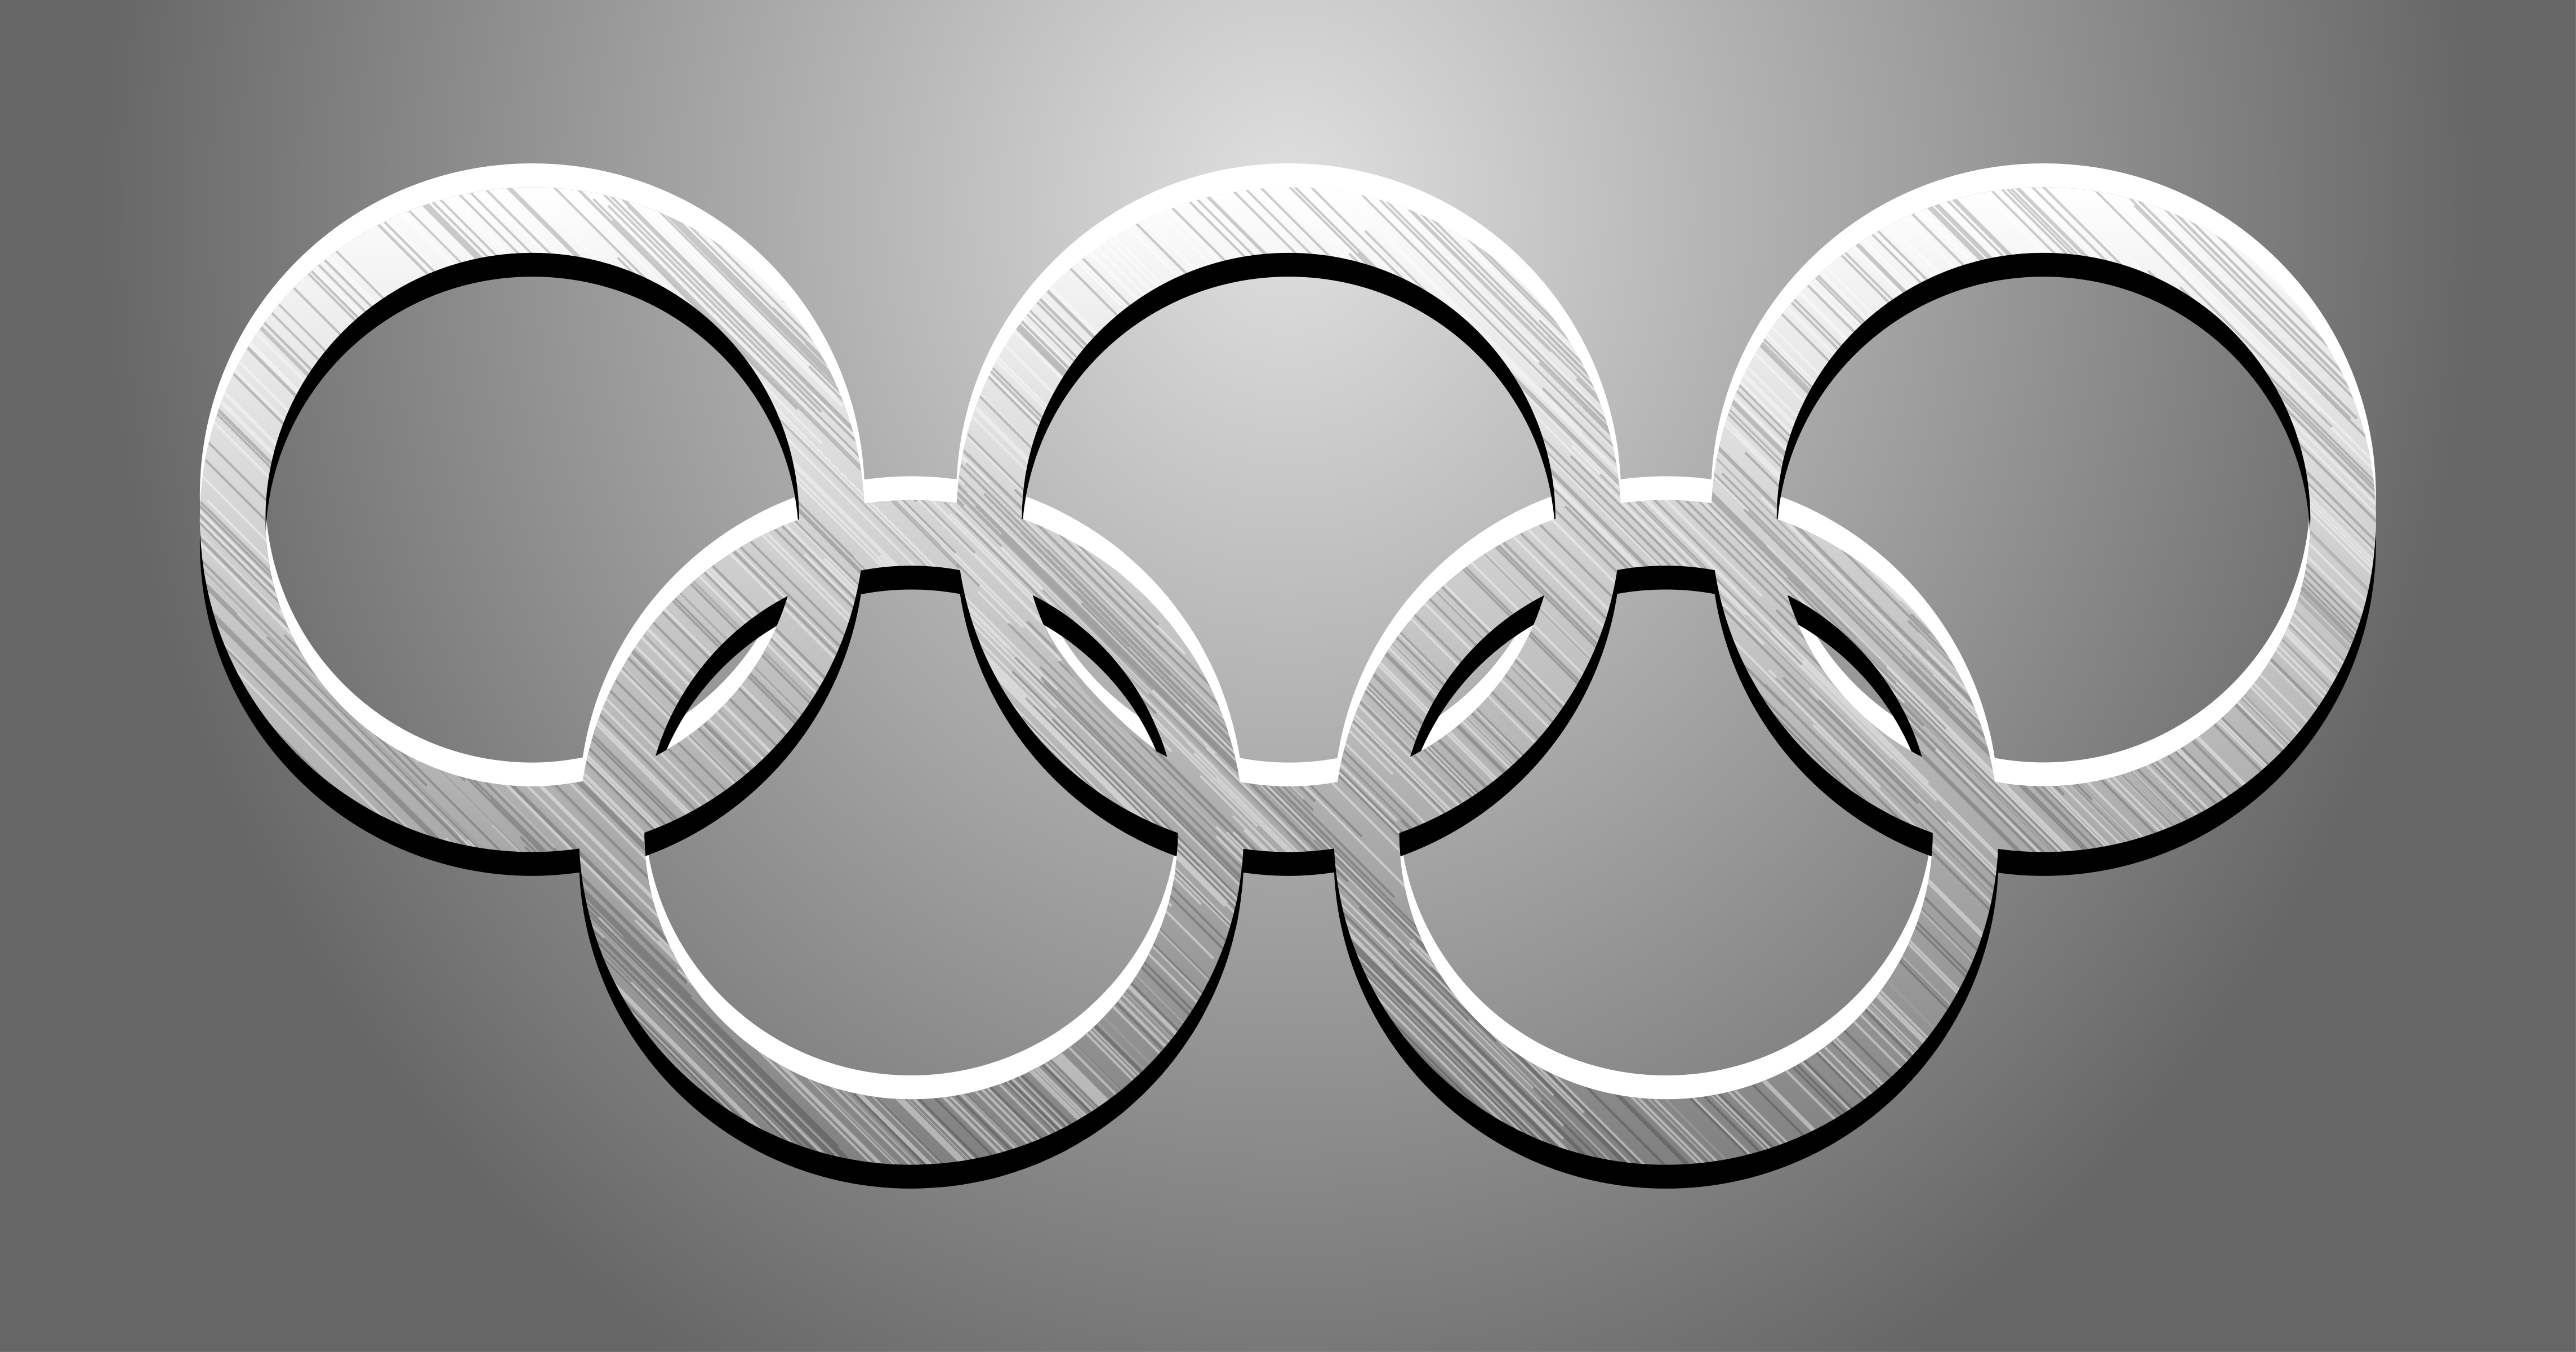 clipart olympic rings 3 olympic rings clip art black and white olympic rings clipart black and white